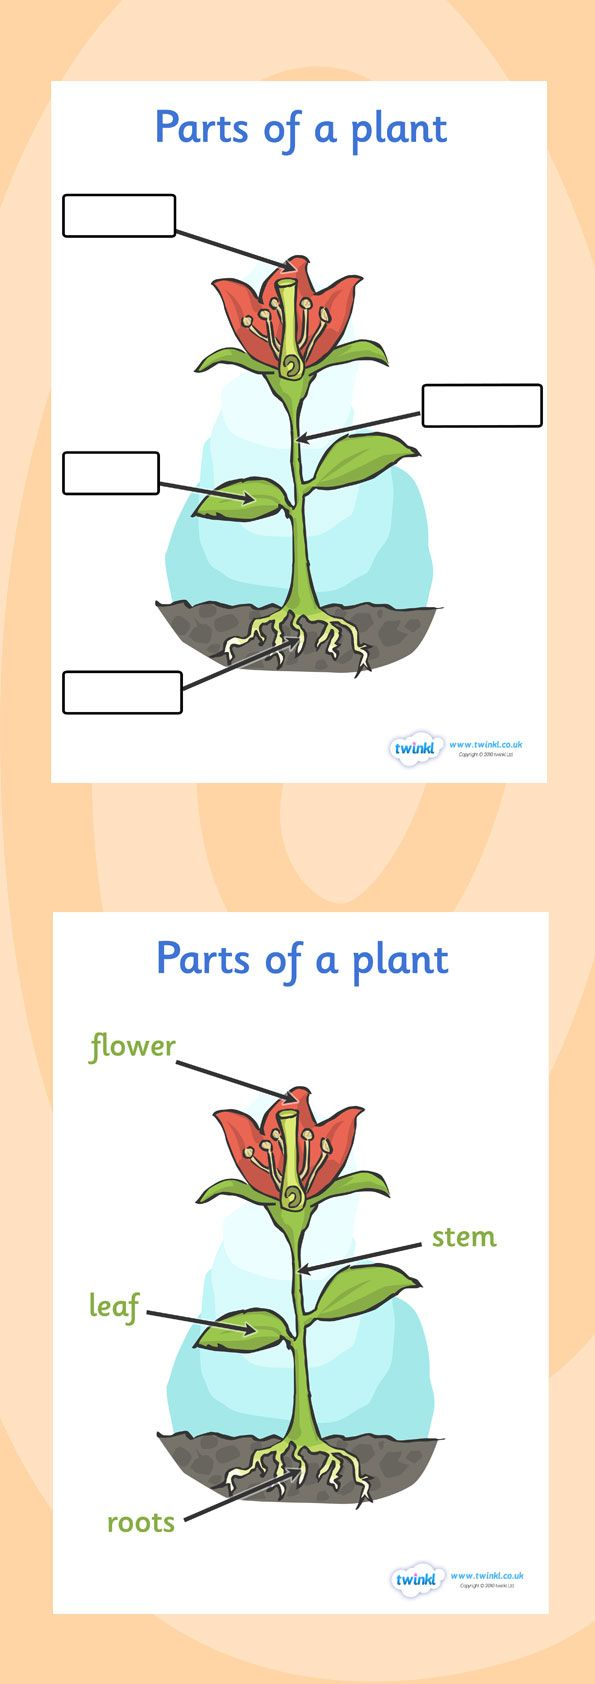 twinkl resources parts of a plant foundation classroom printables for pre school. Black Bedroom Furniture Sets. Home Design Ideas